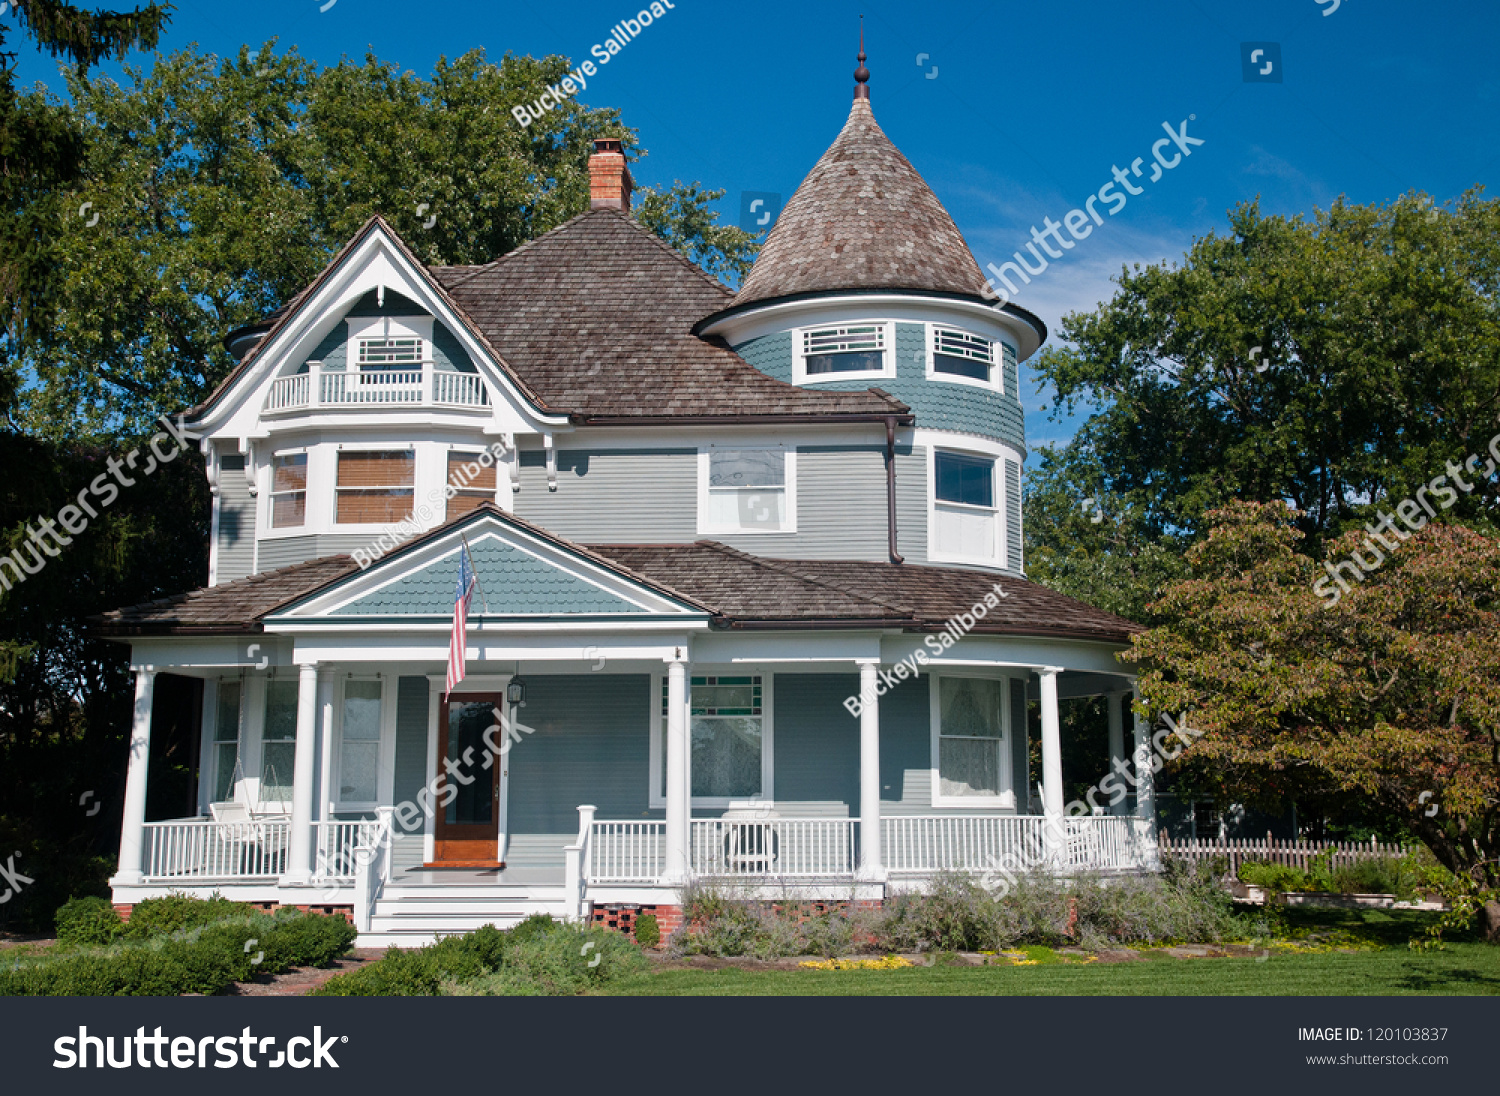 Beautiful gray traditional victorian house american stock for Victorian traditional homes